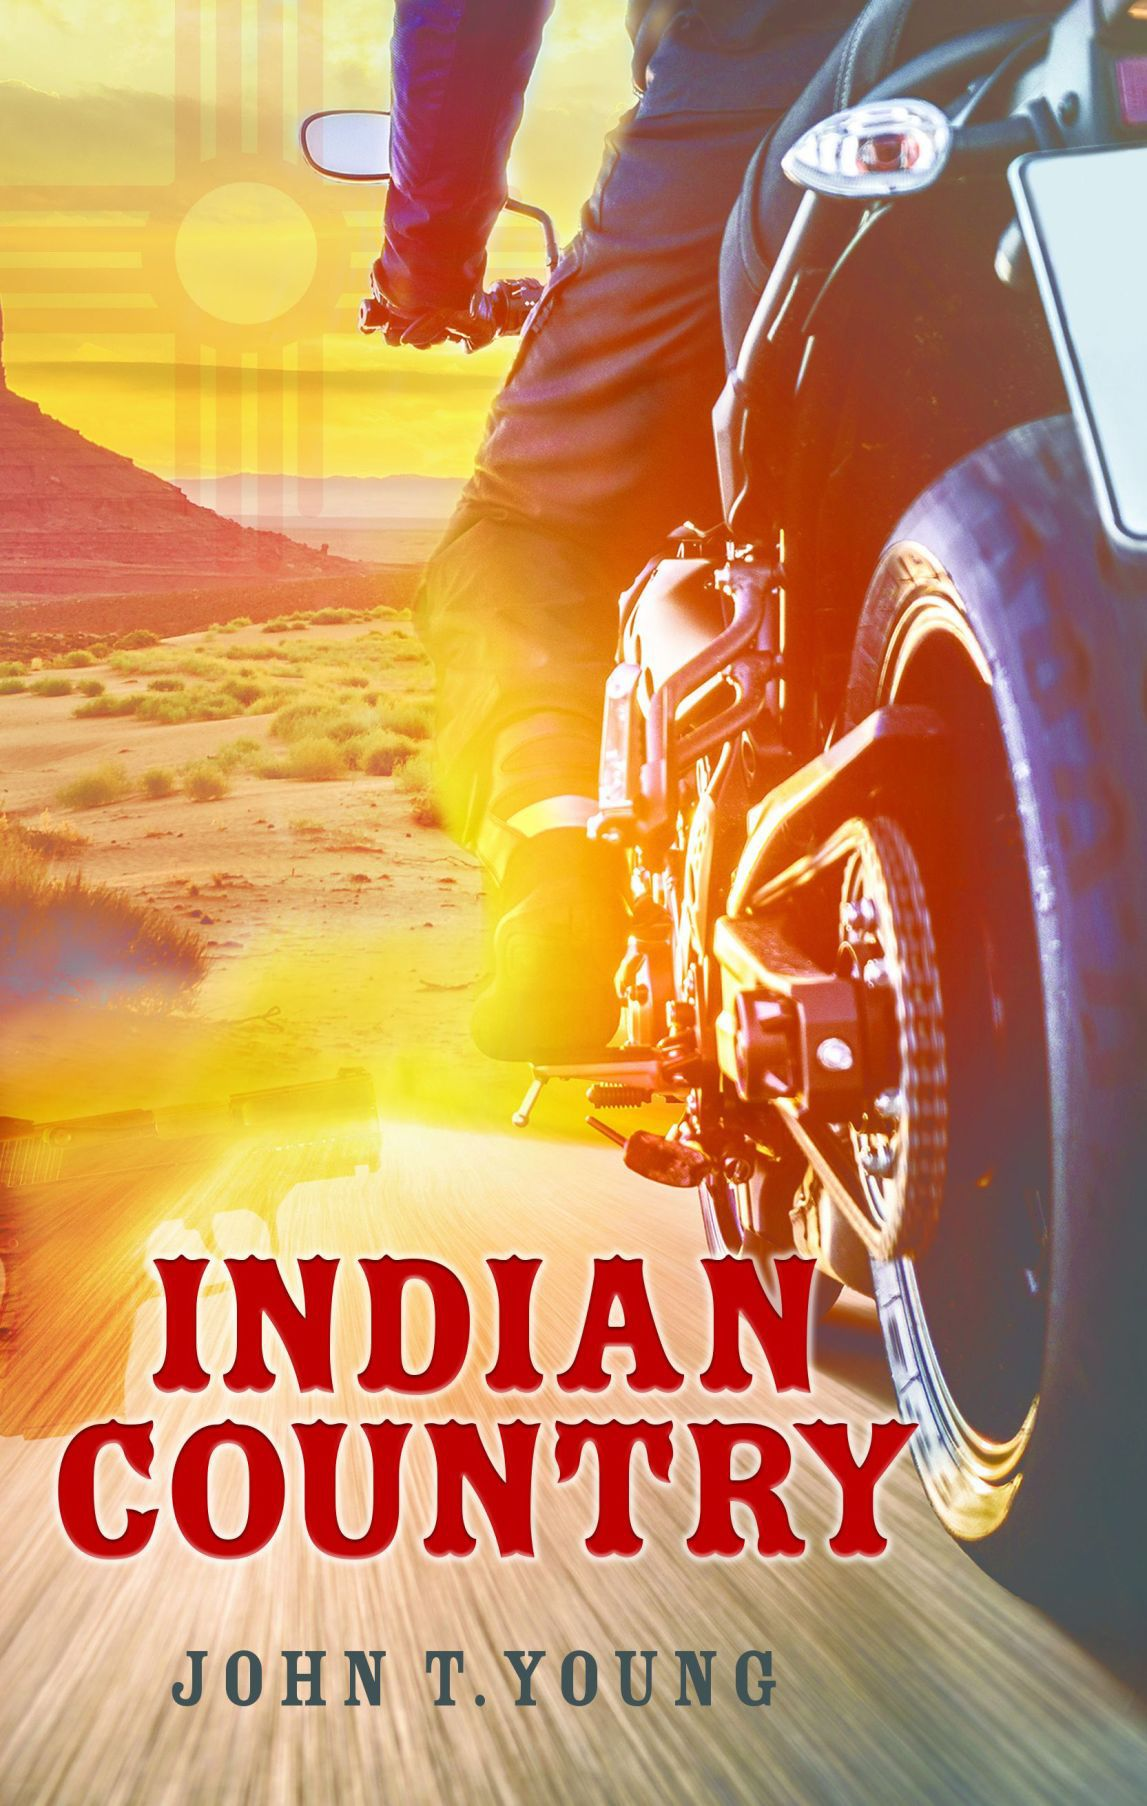 Book Signing: Indian Country at Barnes & Noble